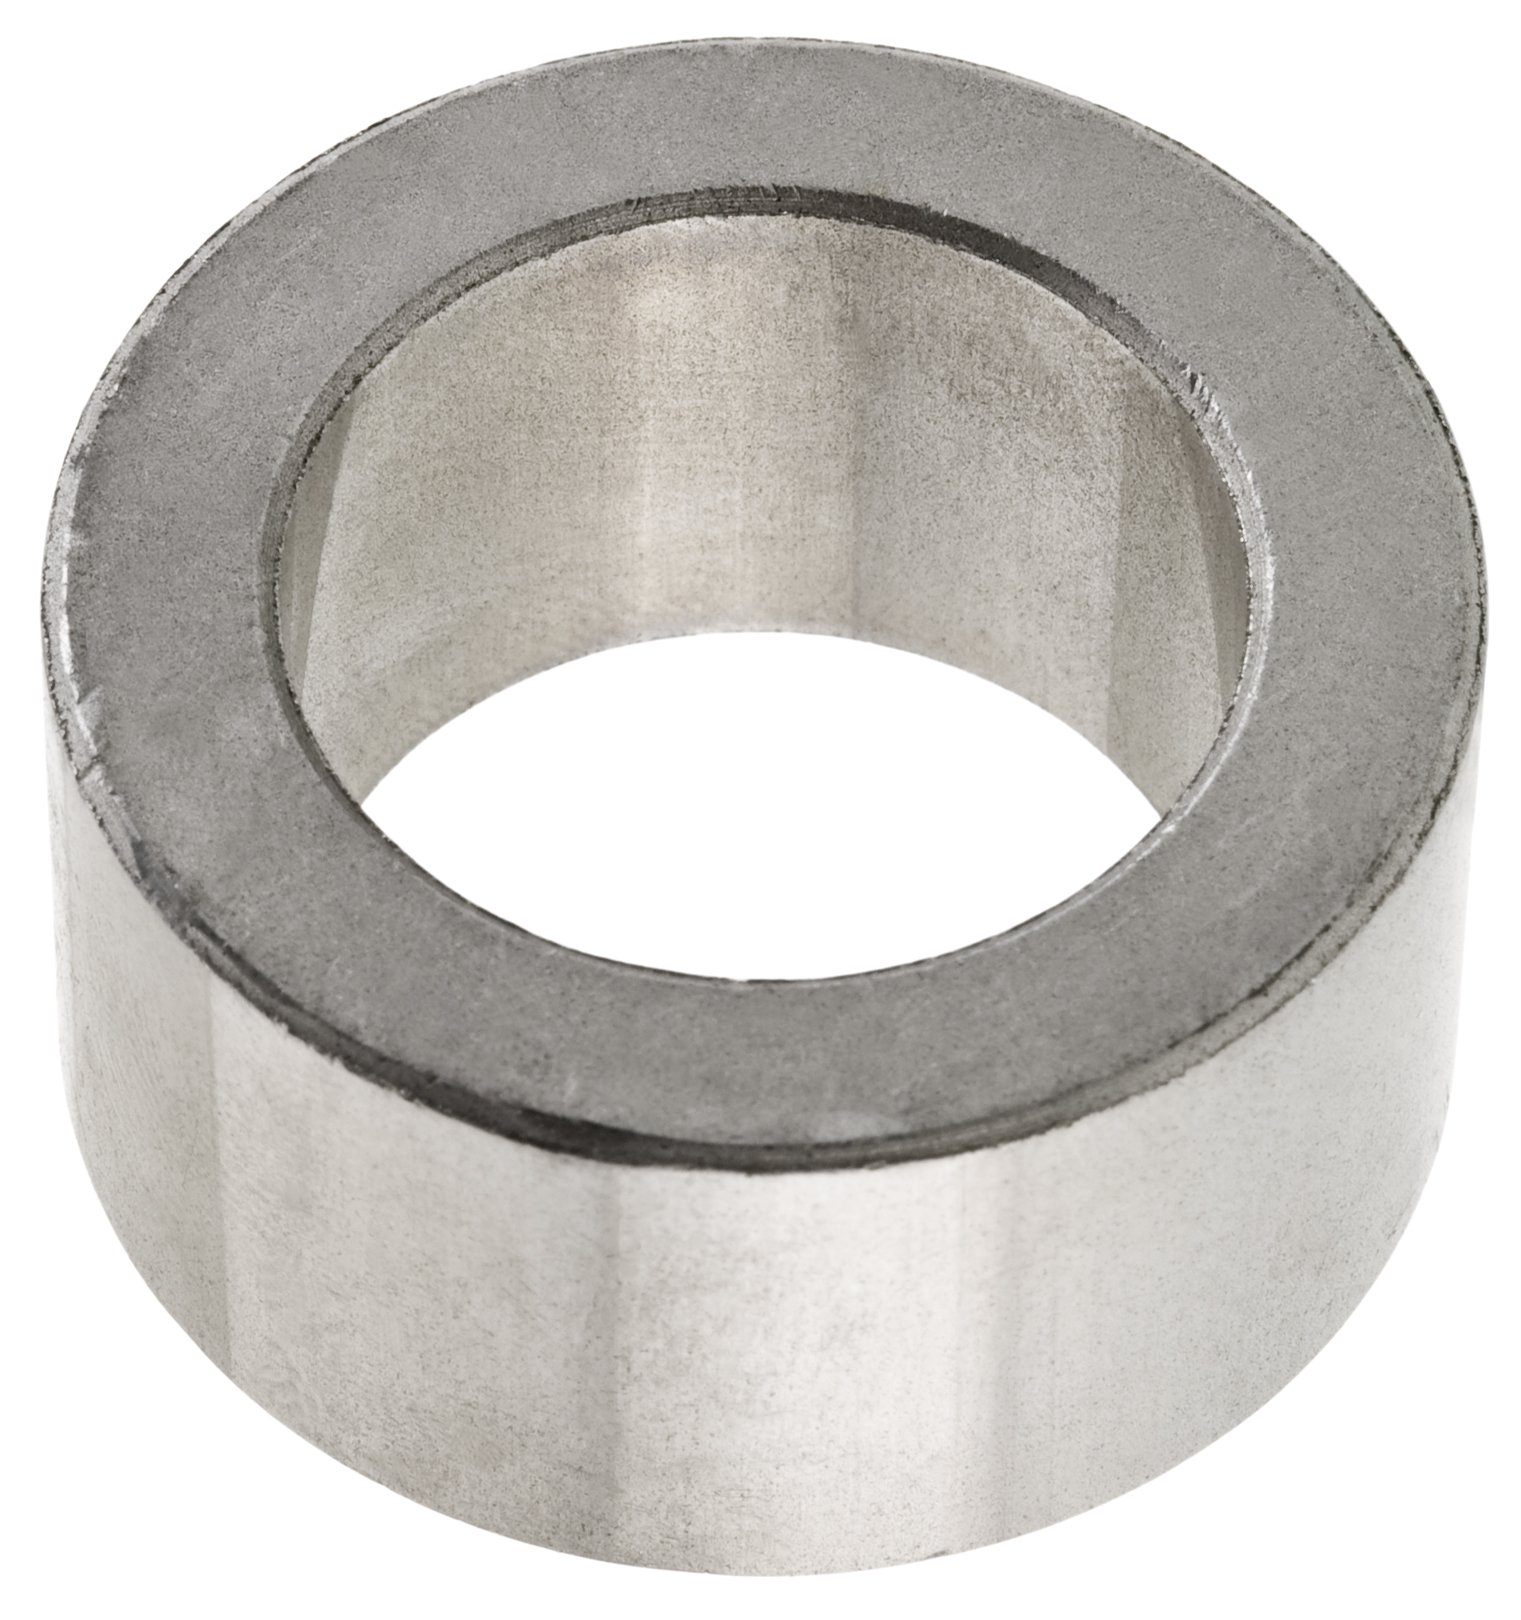 Woodstock W1172 1 by 1-1/2 by 3/4-Inch Spacer